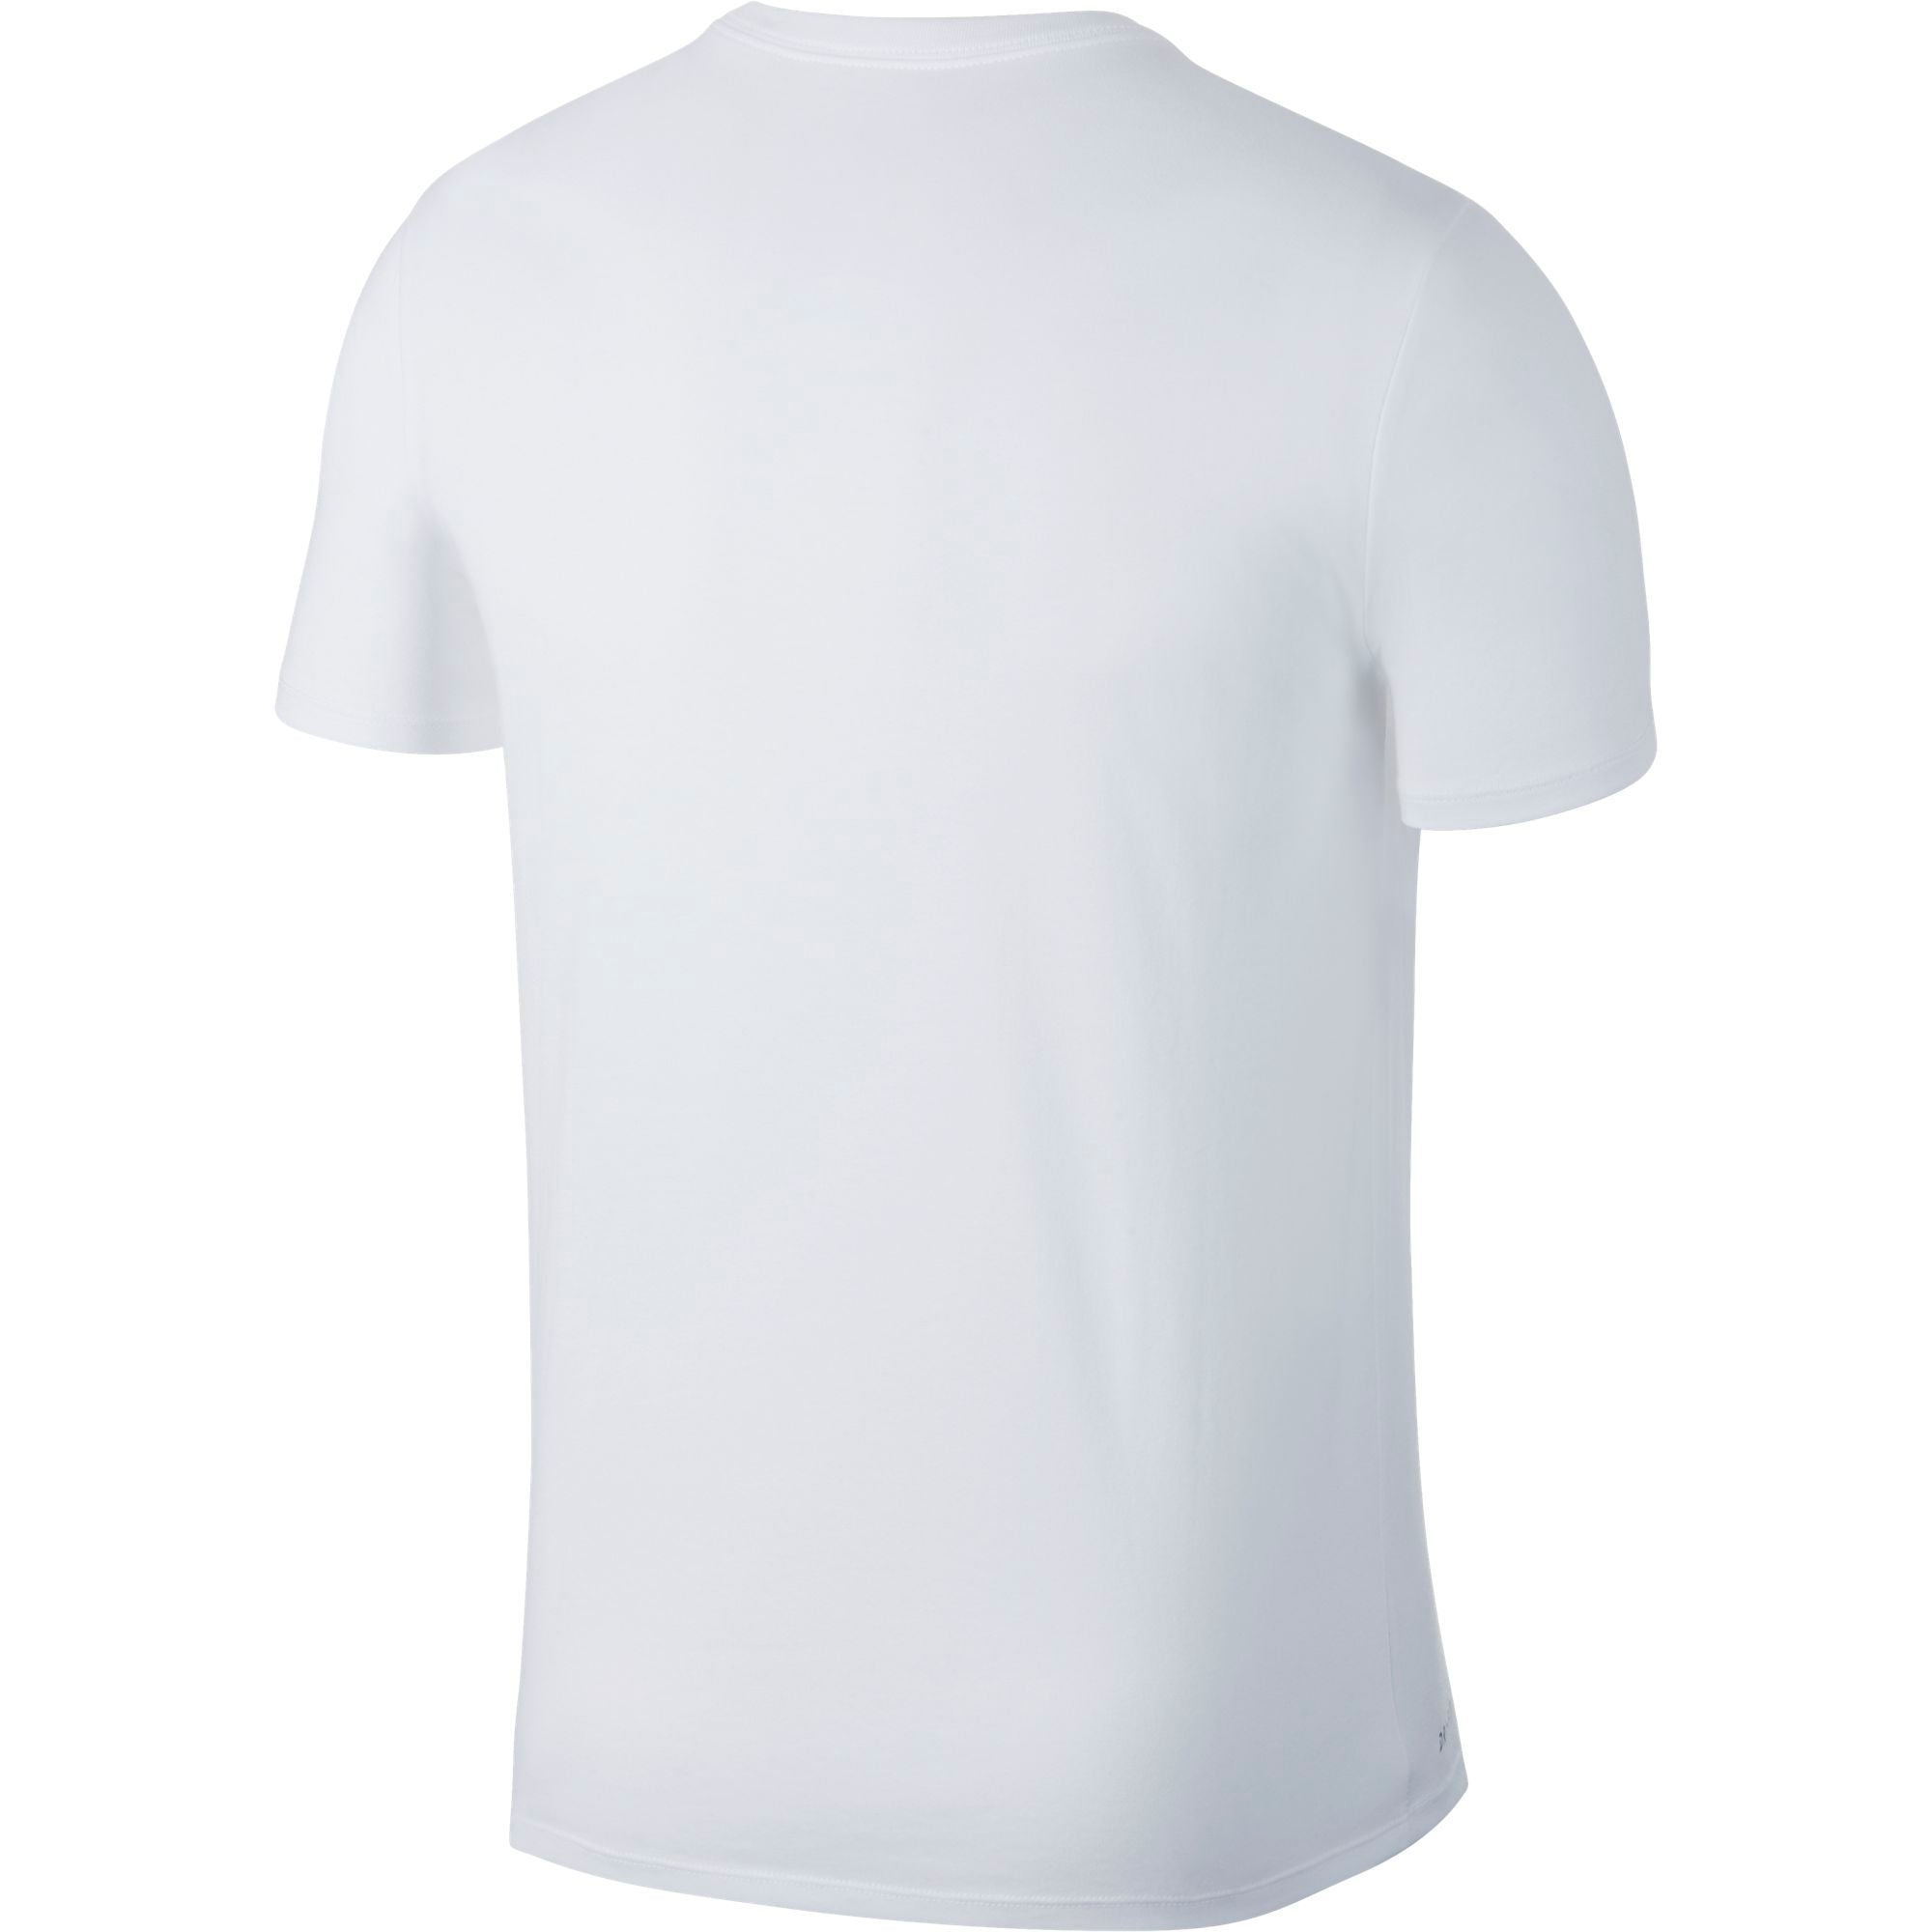 Nike Jordan Basketball Photo Tee - White